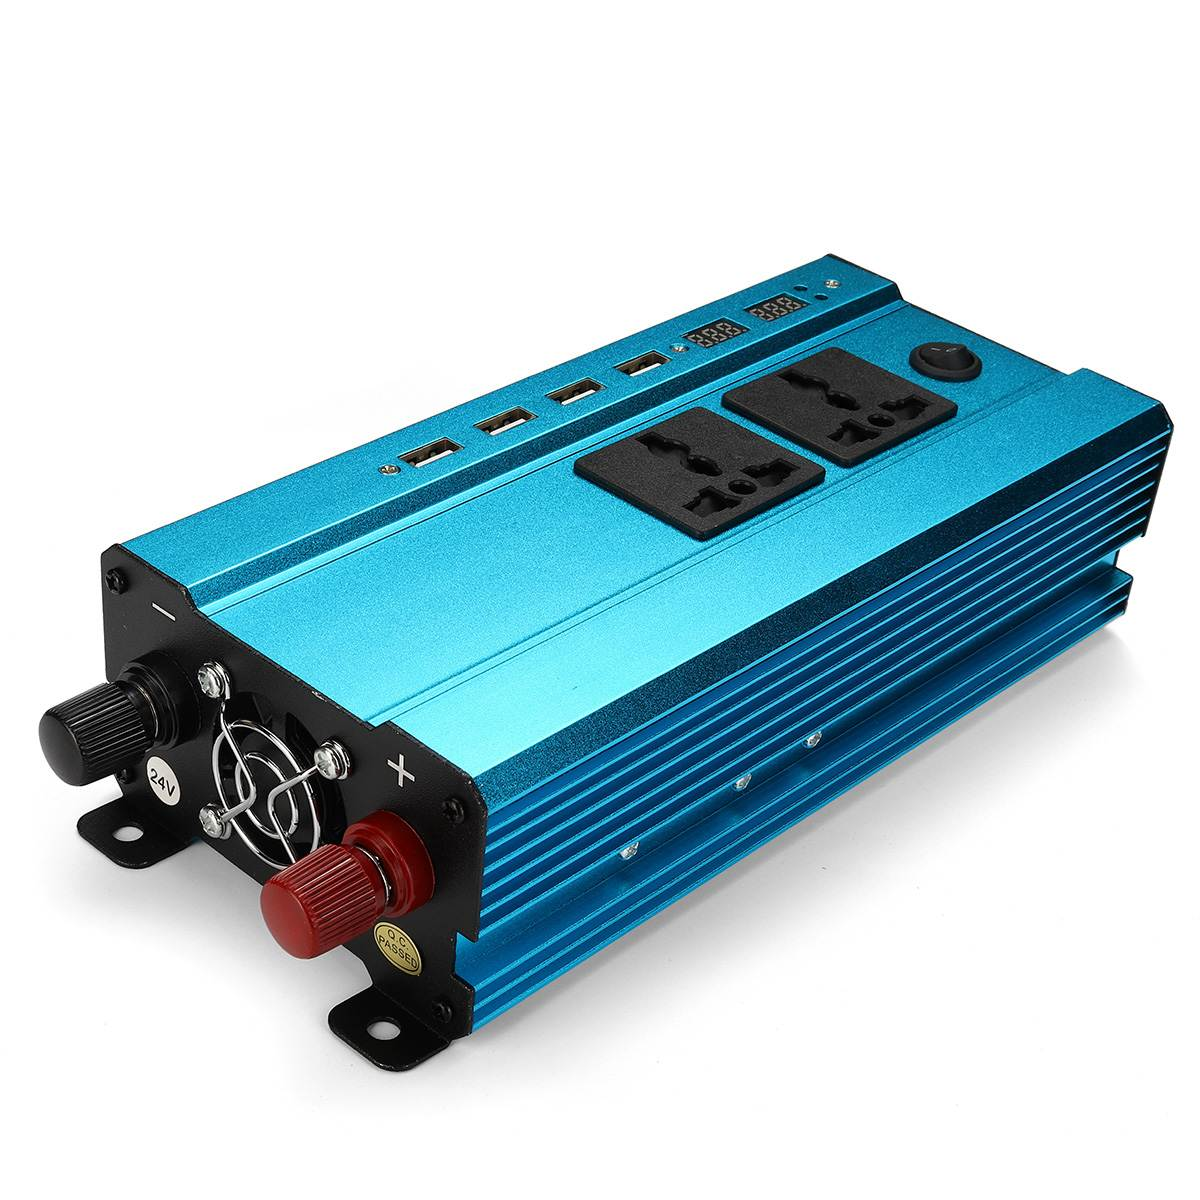 New <font><b>1000W</b></font> Inverter Car Inverter Power Inverters Sine Wave 12V/24V DC to 220V 4USB Interface Voltage Transformer LCD Display image